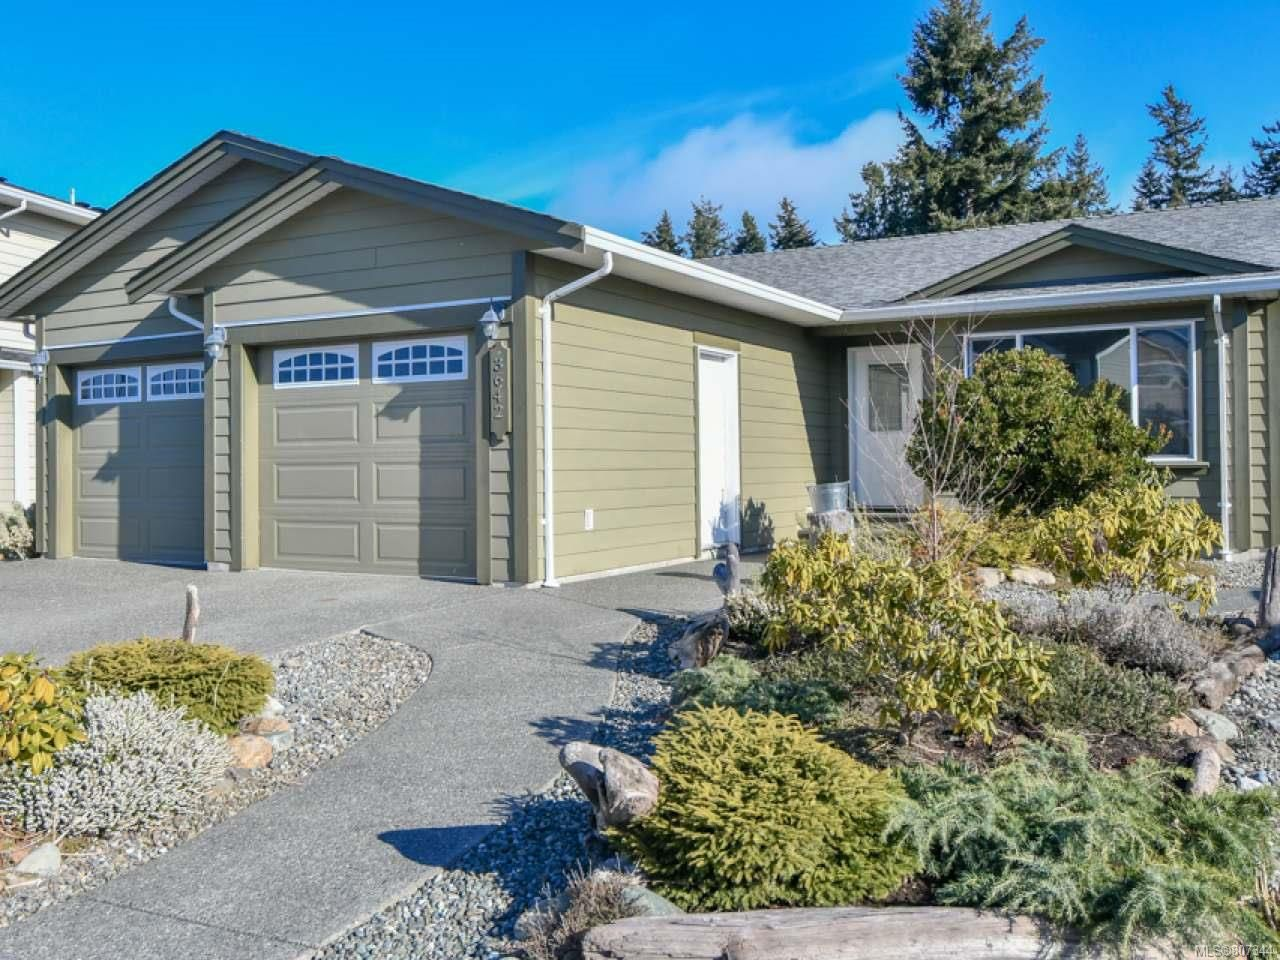 Main Photo: 3642 Brind'Amour Dr in CAMPBELL RIVER: CR Willow Point House for sale (Campbell River)  : MLS®# 807344